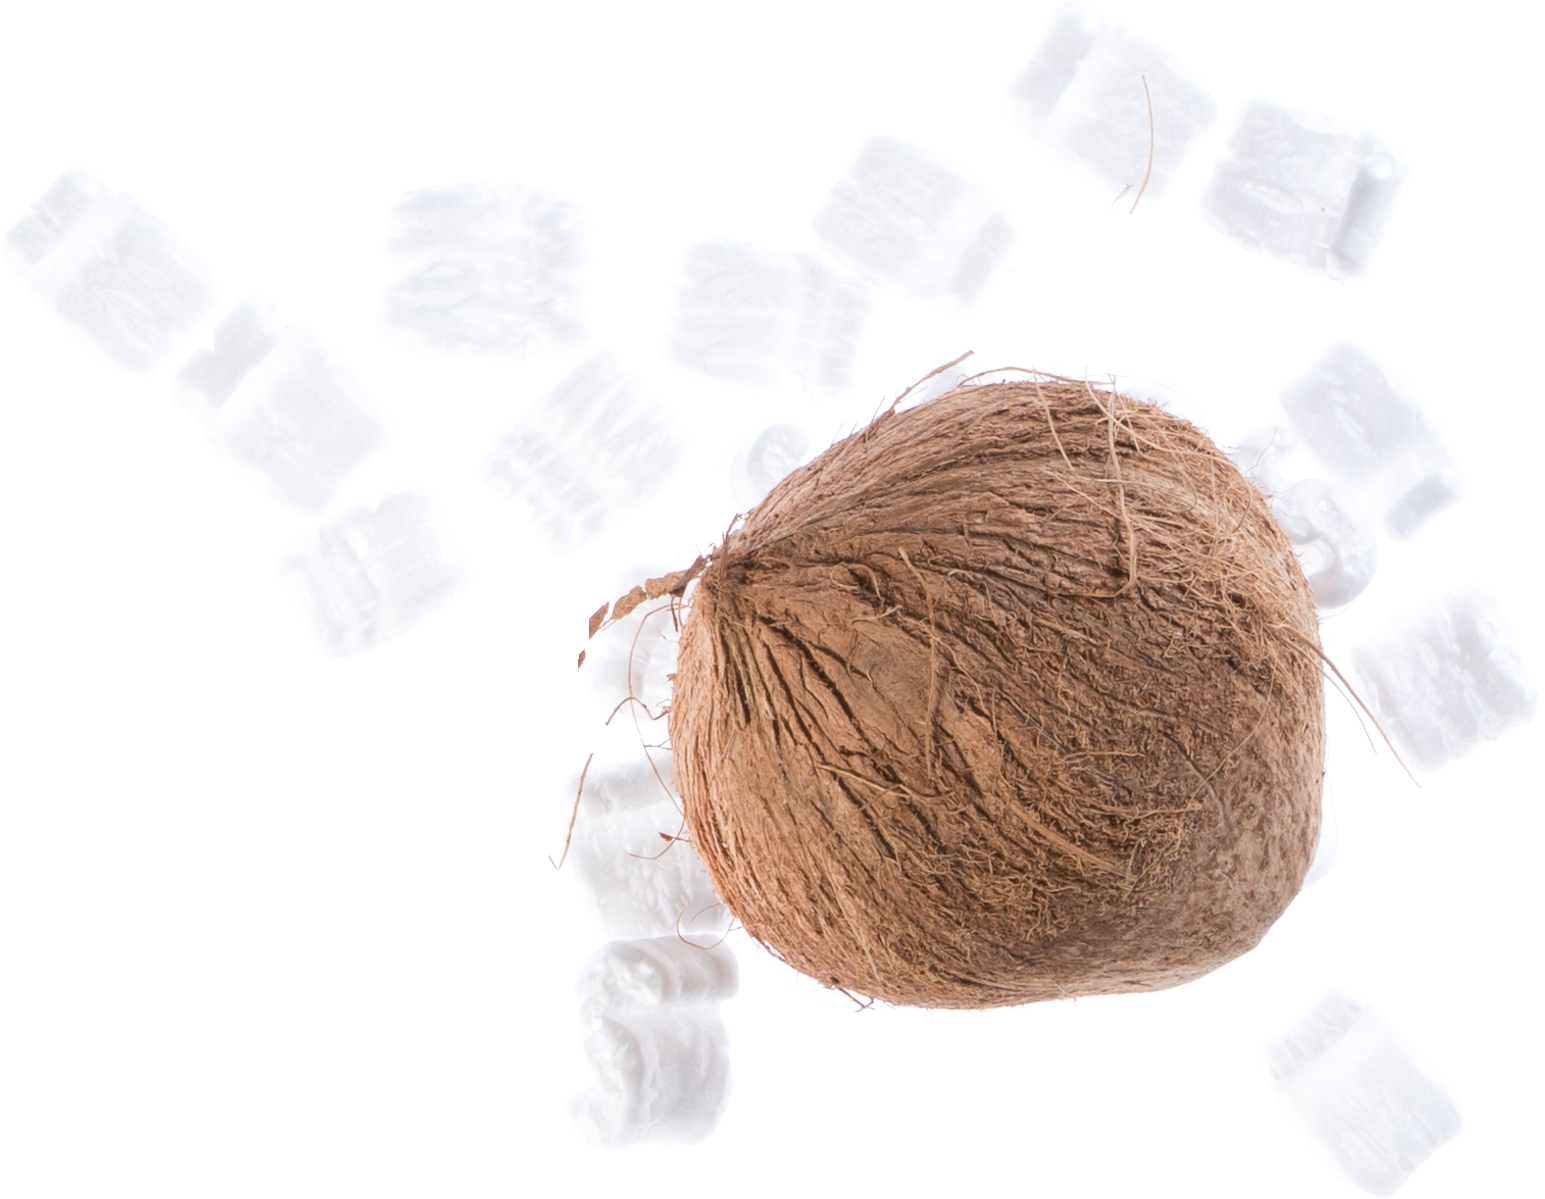 A coconut with shipping material